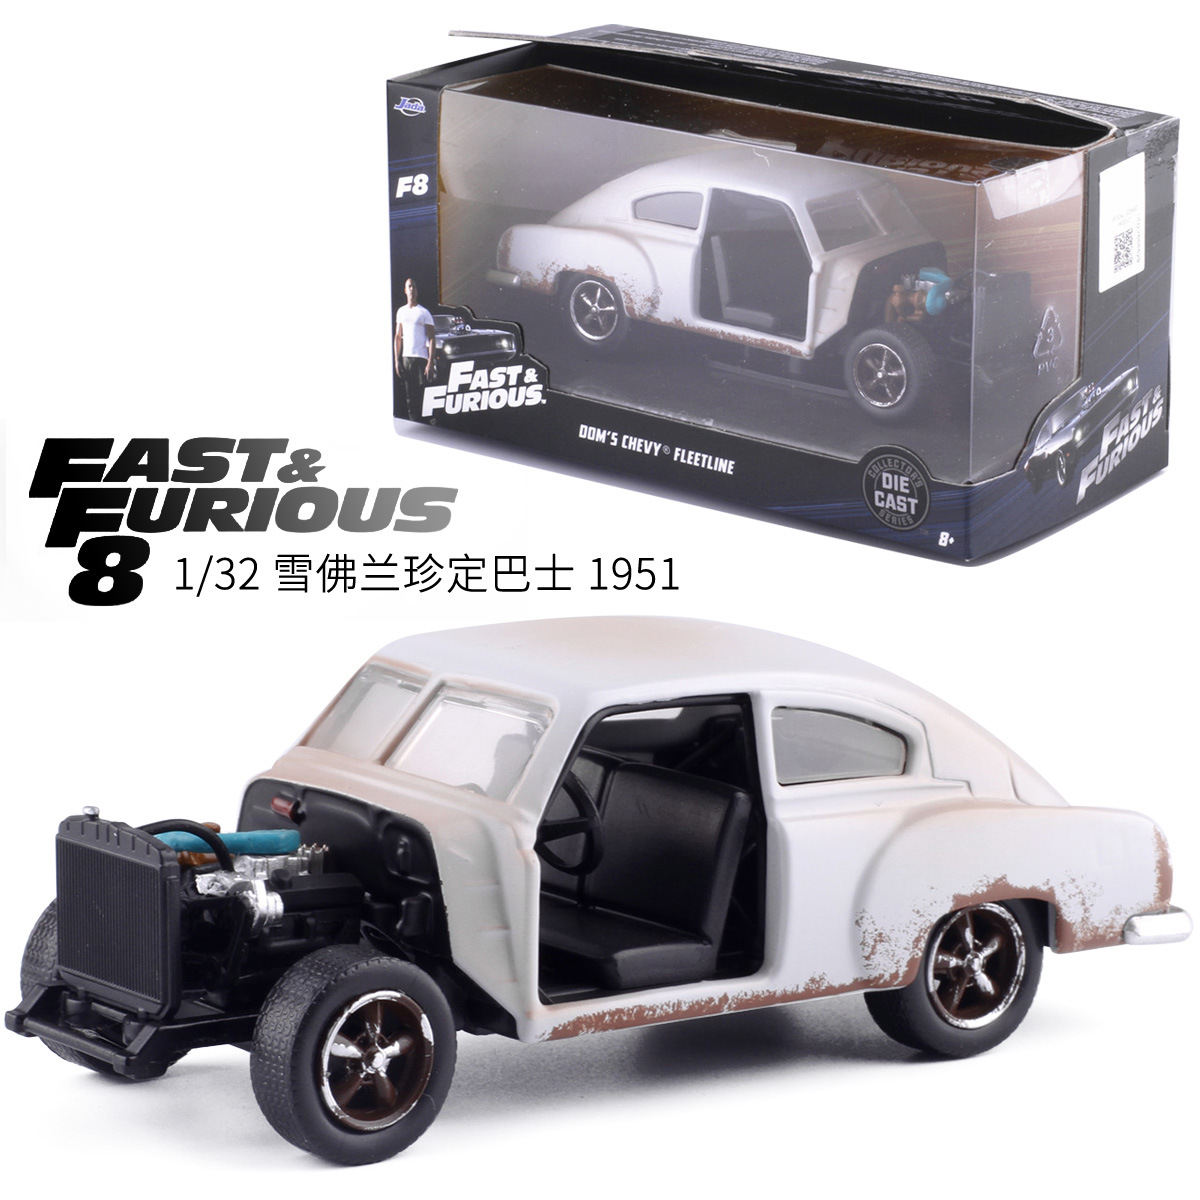 medium resolution of 1 32 jada fast furious alloy car chevy fleetline 1951 bus metal diecasts classical model toy collection toys for children gift in diecasts toy vehicles